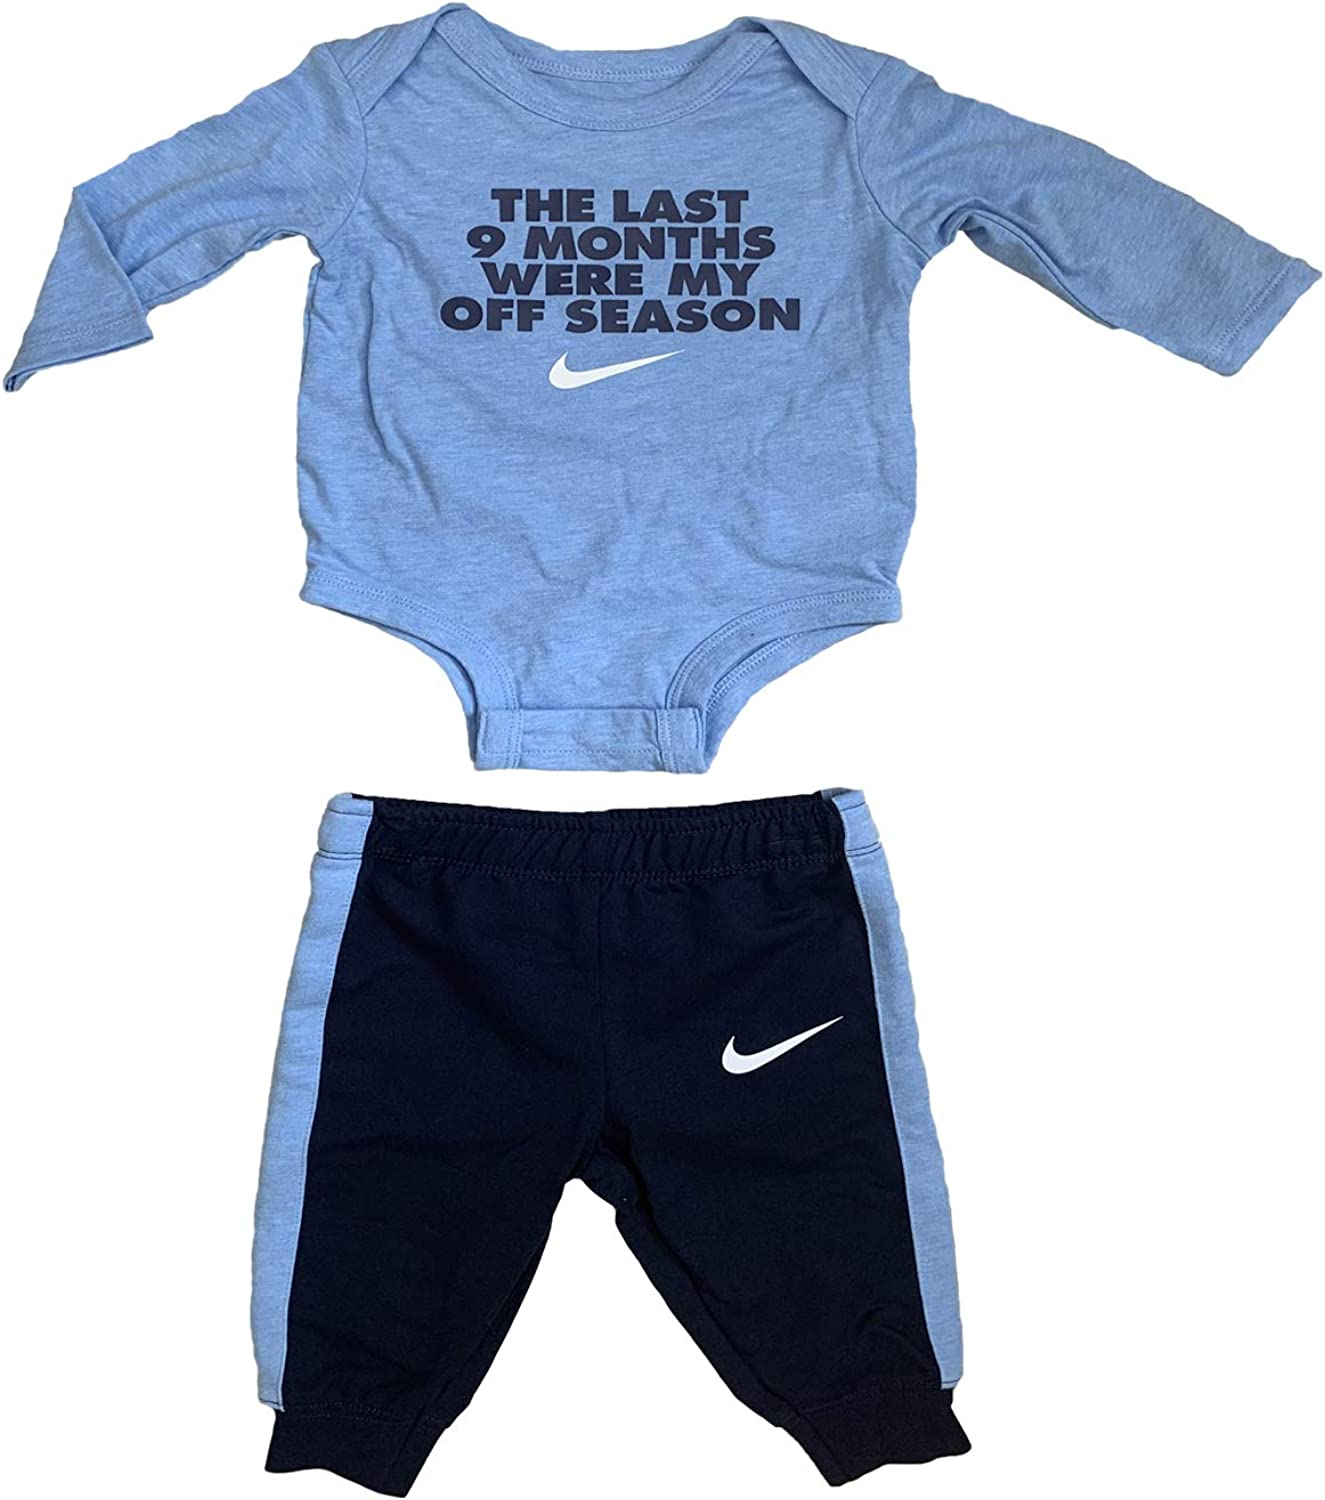 Amazon Com Nike Bodysuit Pants 2 Pieces Clothing Set For Infant Newborn Baby Boys 2020 Clothing